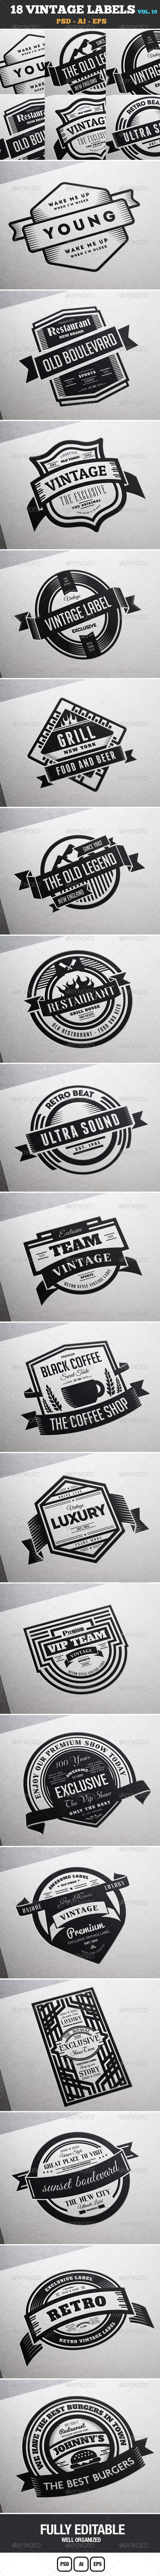 GraphicRiver 18 Vintage Labels & Badges Logos Insignias V10 7292169